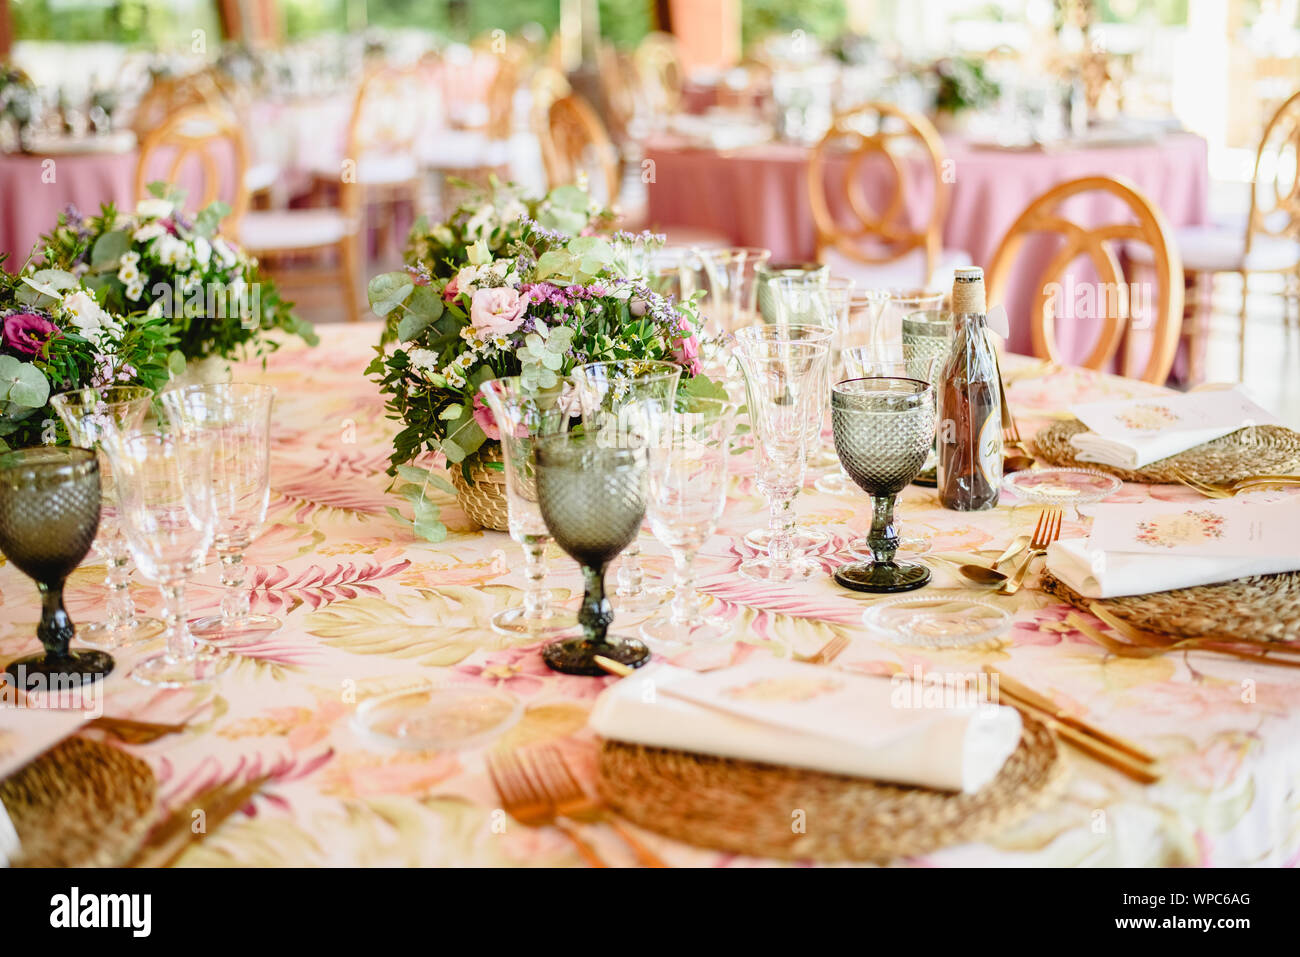 Elegant Cutlery And Floral Arrangements For A Table In A Wedding Restaurant With Vintage Style Centerpieces Stock Photo Alamy